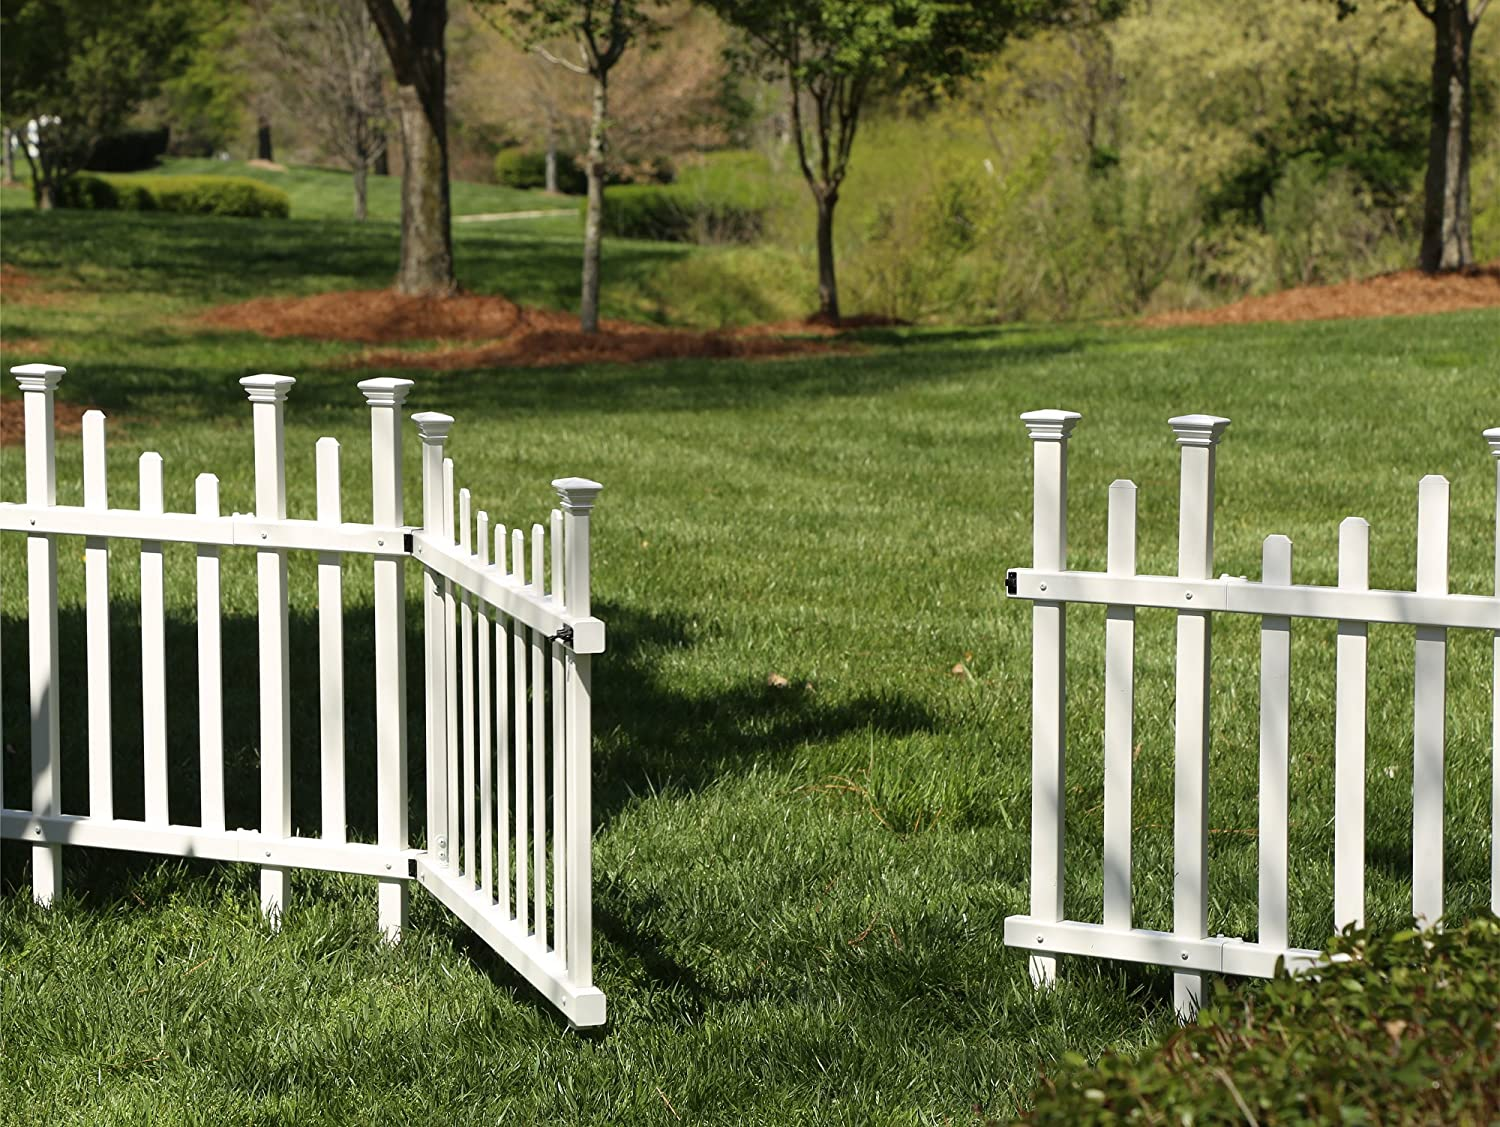 Zippity Outdoor Products ZP19028 New product!! Unassembled Vinyl Madison shipfree Gate